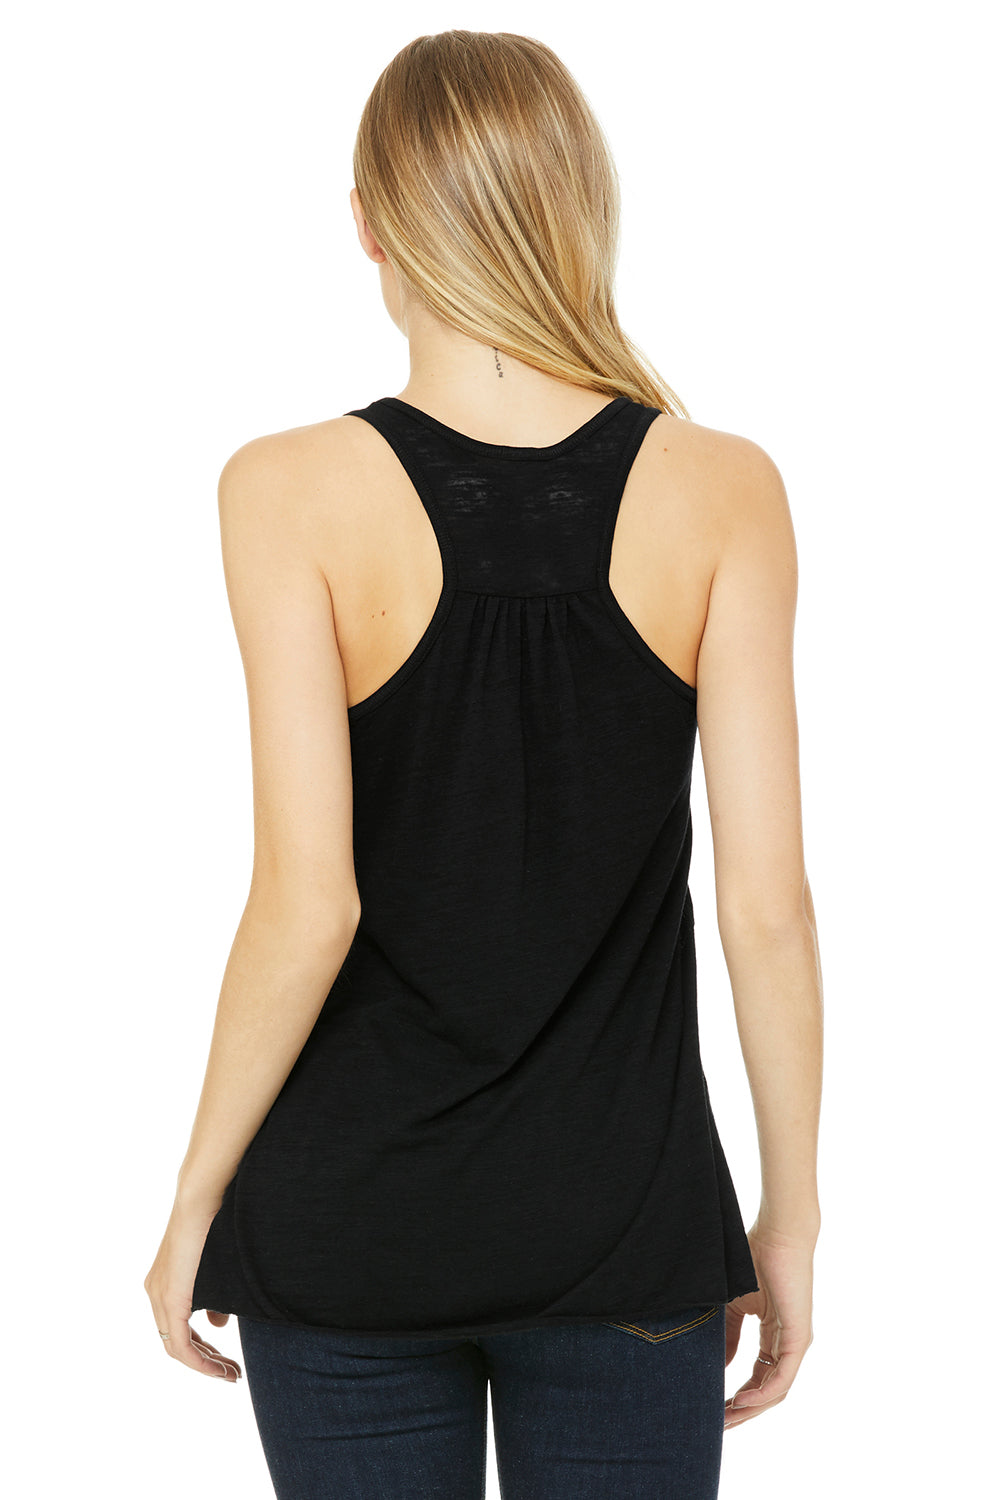 Bella + Canvas B8800 Womens Flowy Tank Top Black Slub Back